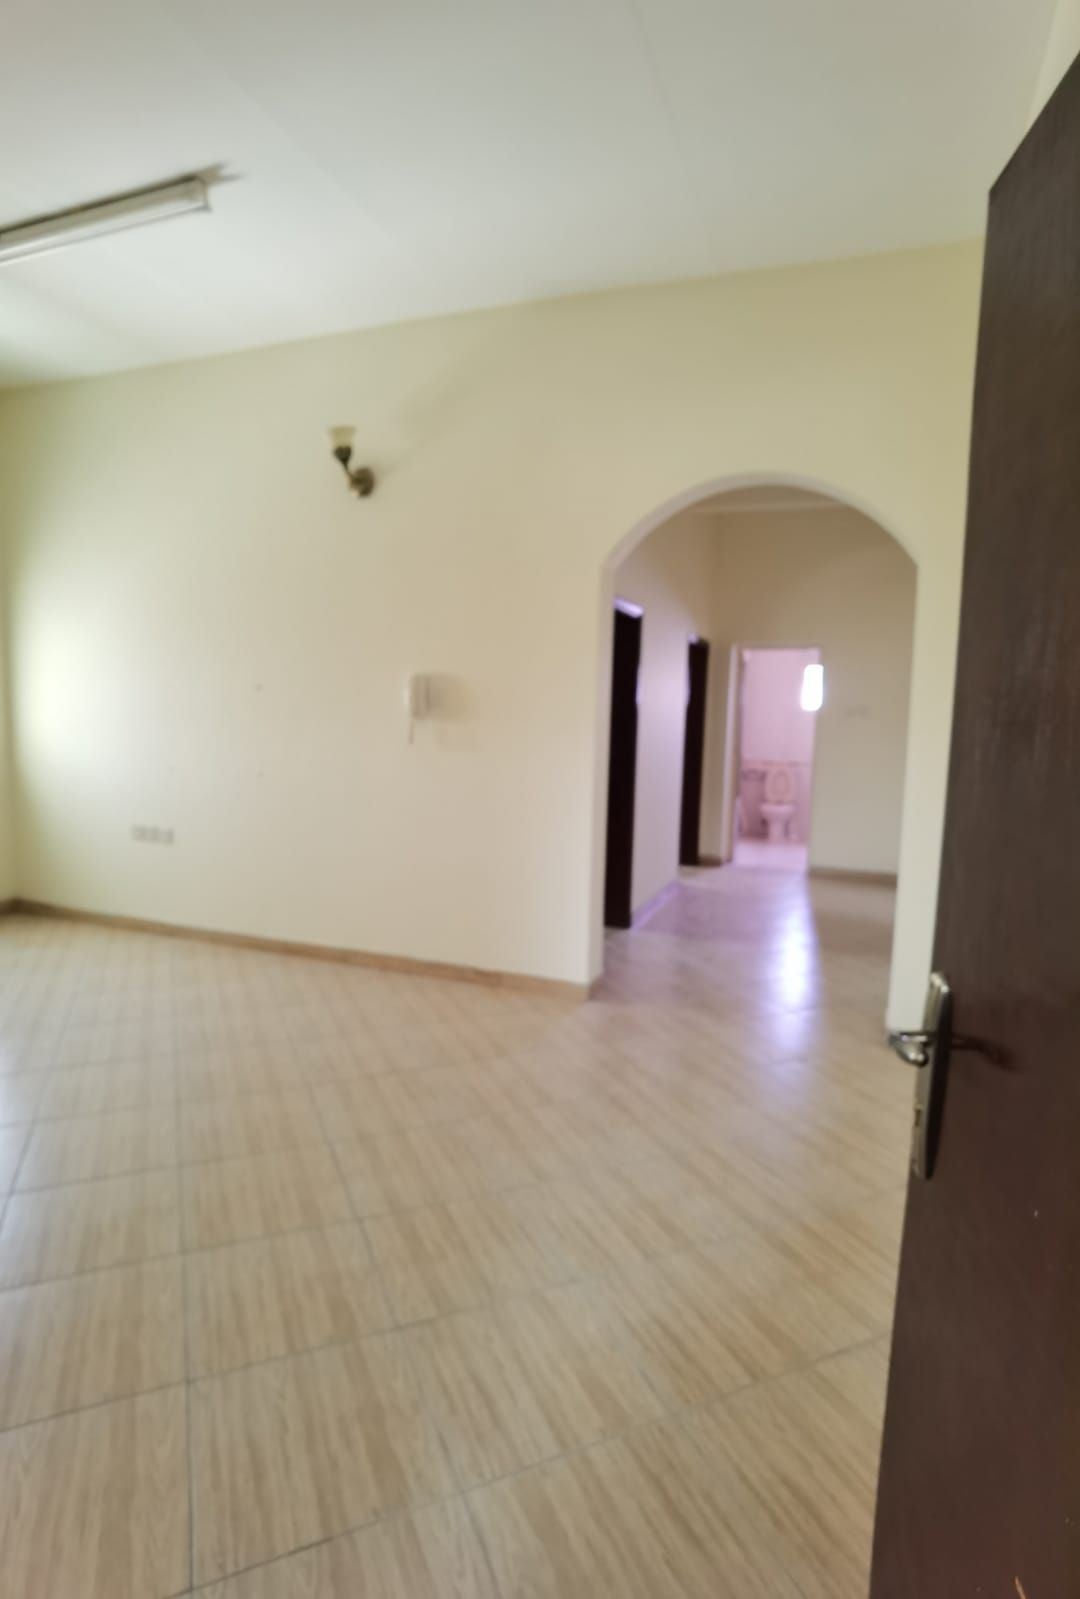 For rent an office apartment in Tubli consisting of two rooms, two bathrooms, a hall and a kitchen on the second floor without an elevator, 150 dinars